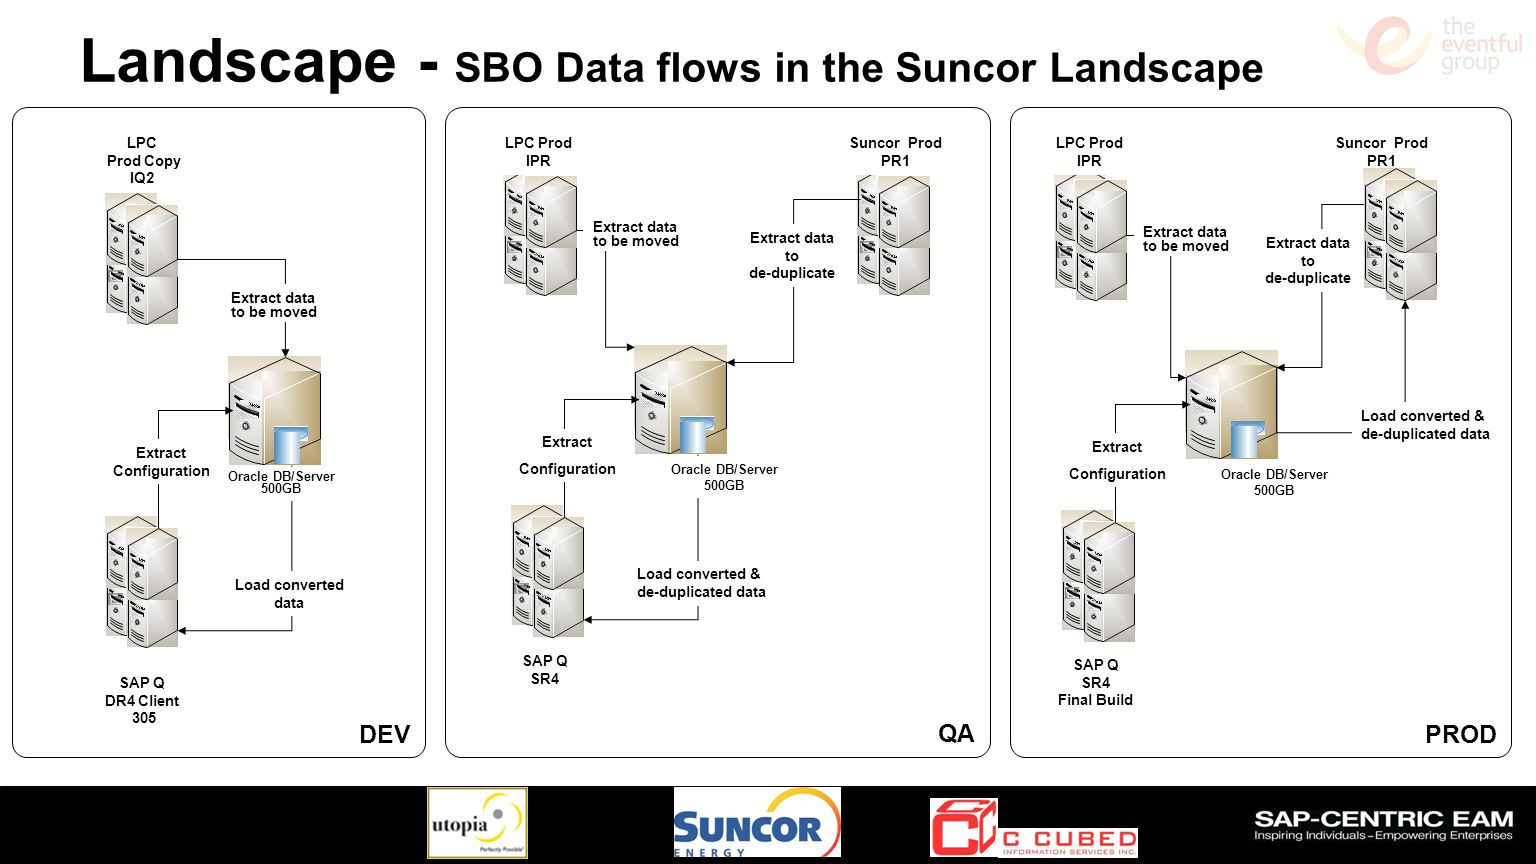 Landscape - SBO Data flows in the Suncor Landscape